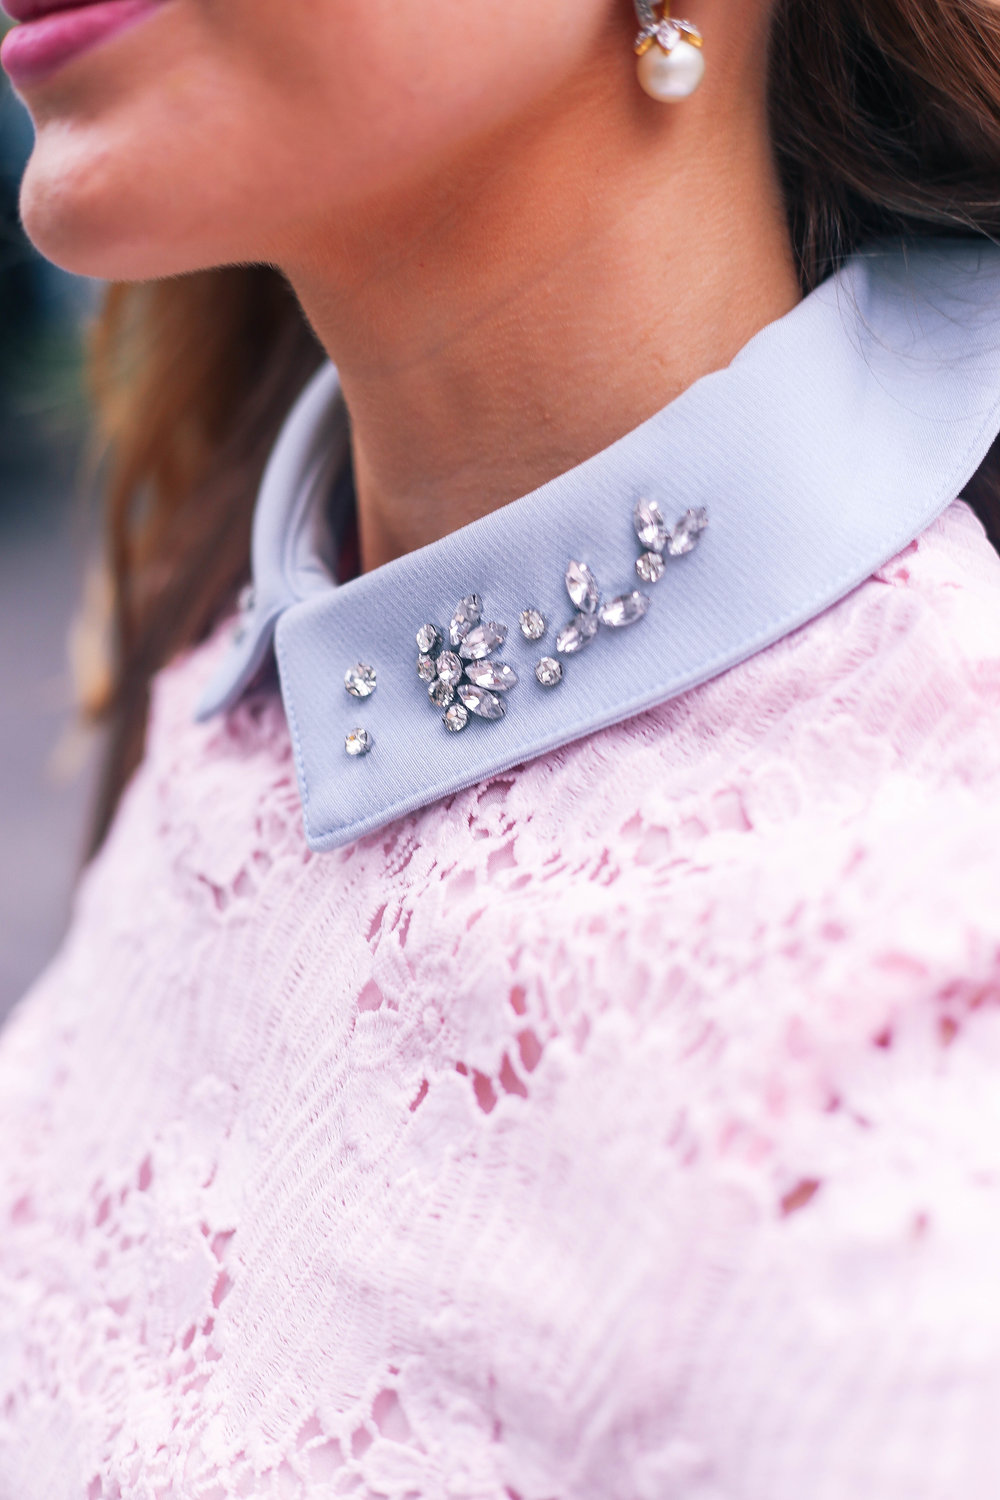 Floral Crochet Embellished Collar- Enchanting Elegance